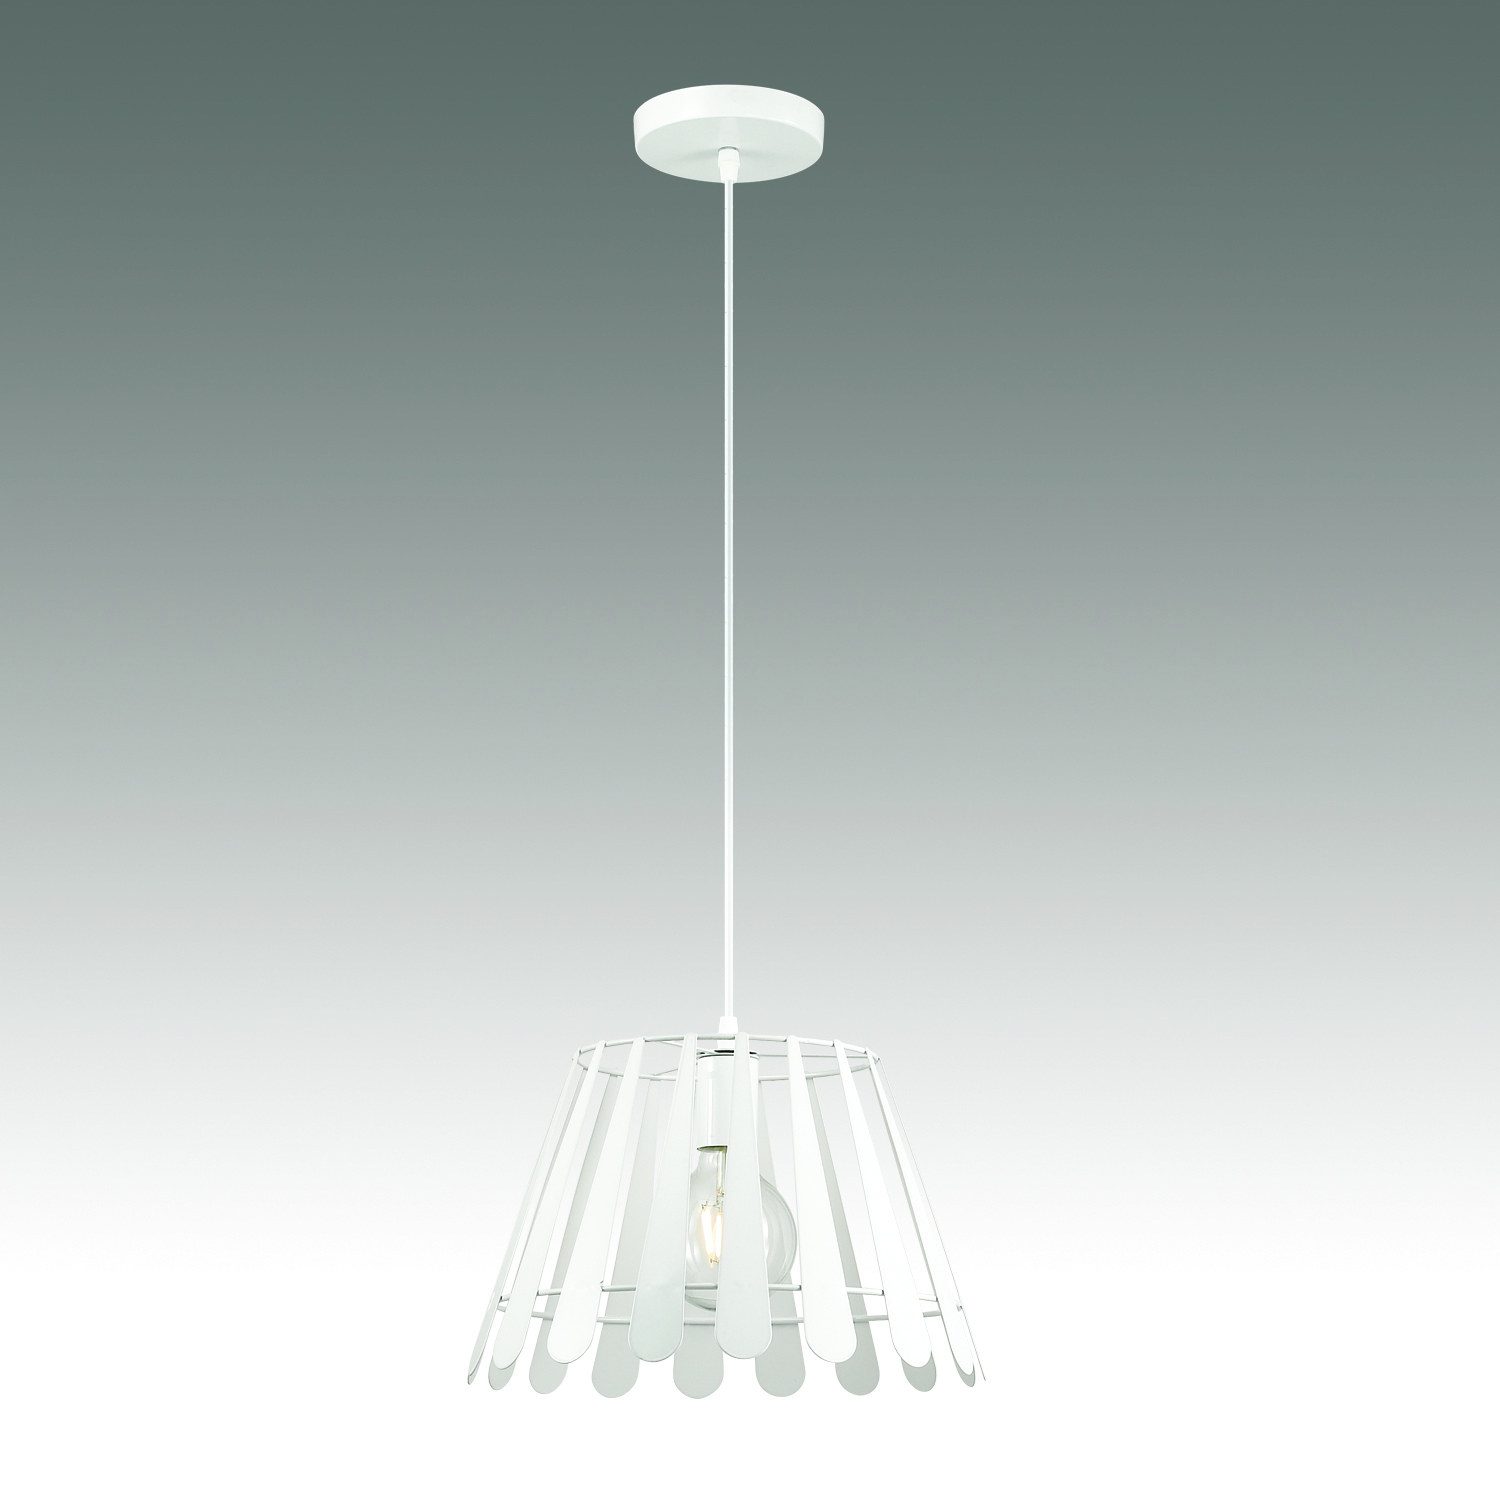 Подвес ODEON LIGHT арт. 3382/1